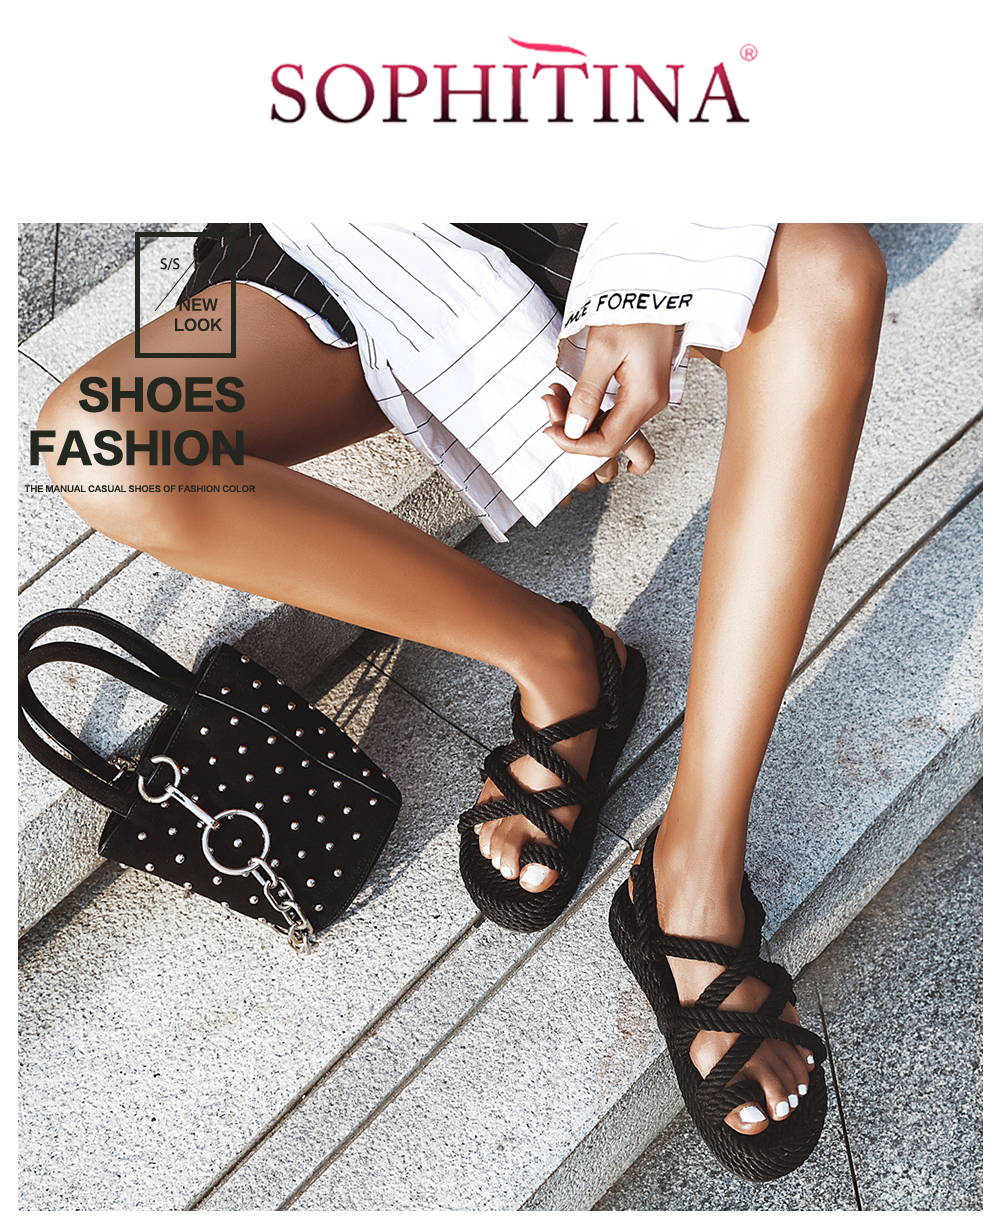 Po448 : po448, SOPHITINA, Fashion, Women', Sandals, Toepost, Design, Strap, Quality, Shoes, Summer, Stylish, PO448|Middle, Heels|, AliExpress